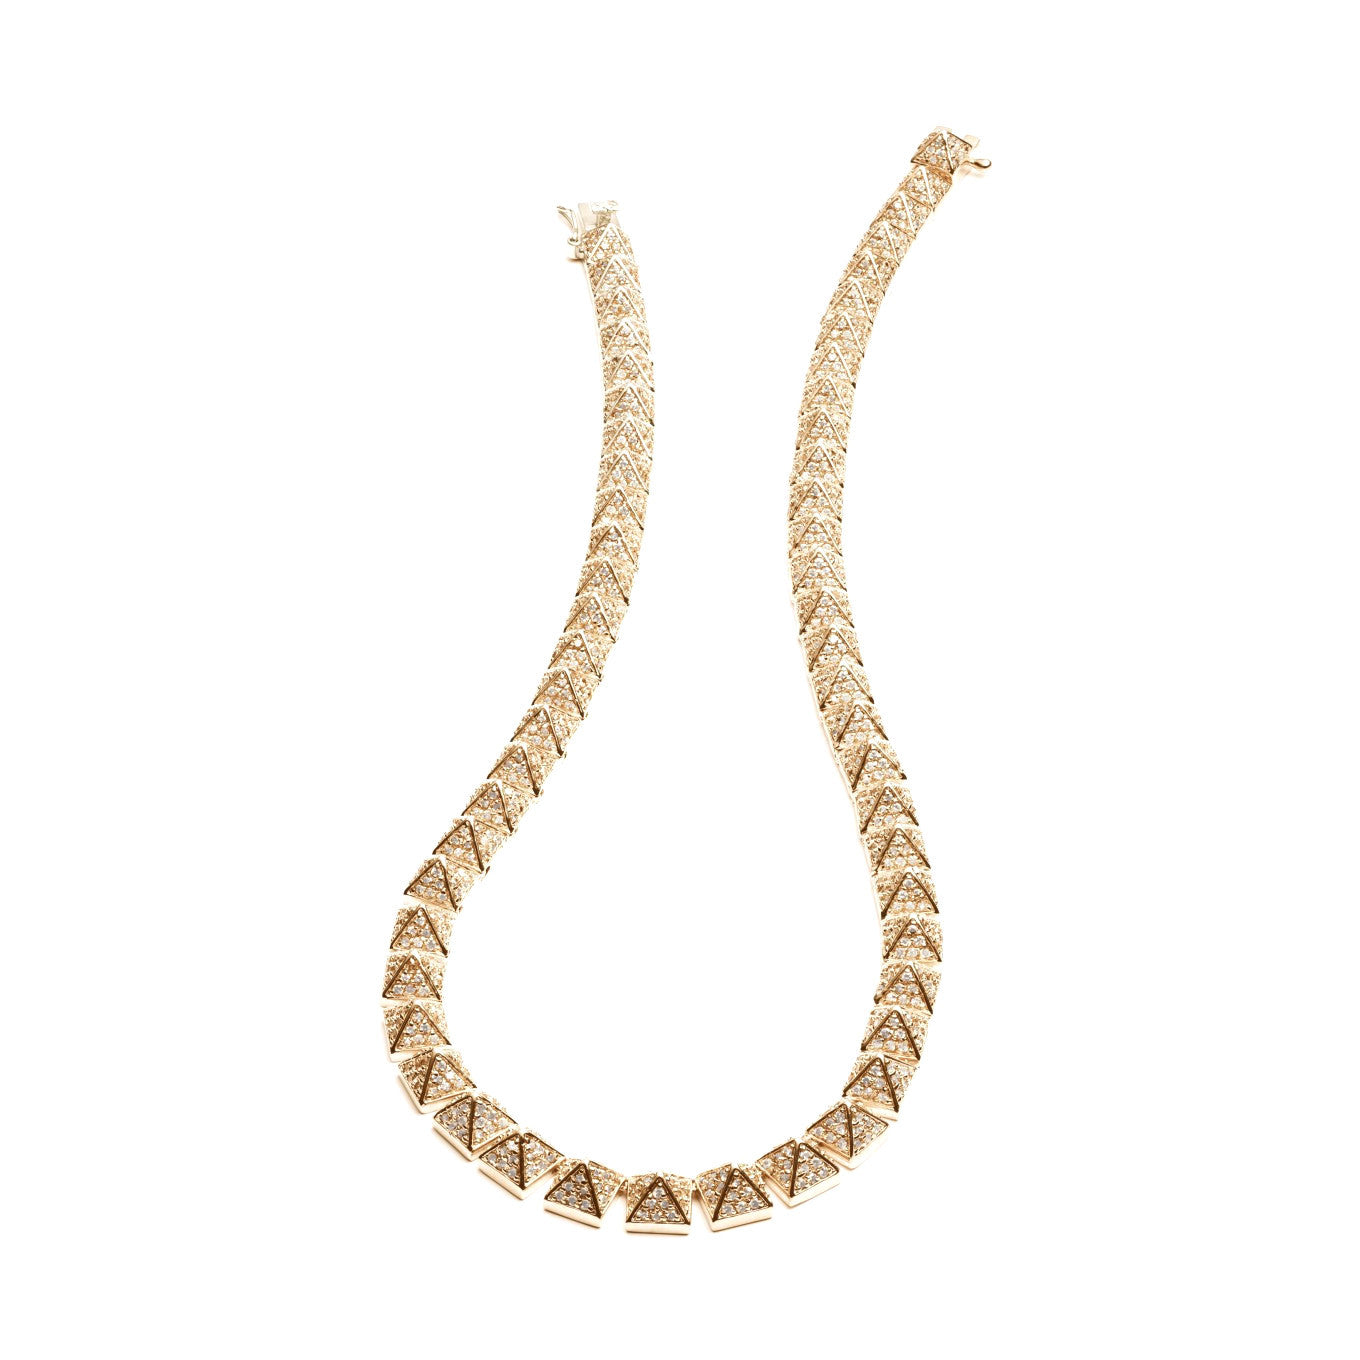 PAVÉ PYRAMID NECKLACE - Eddie Borgo -  Necklace - Ora by D'Amore Jewelers